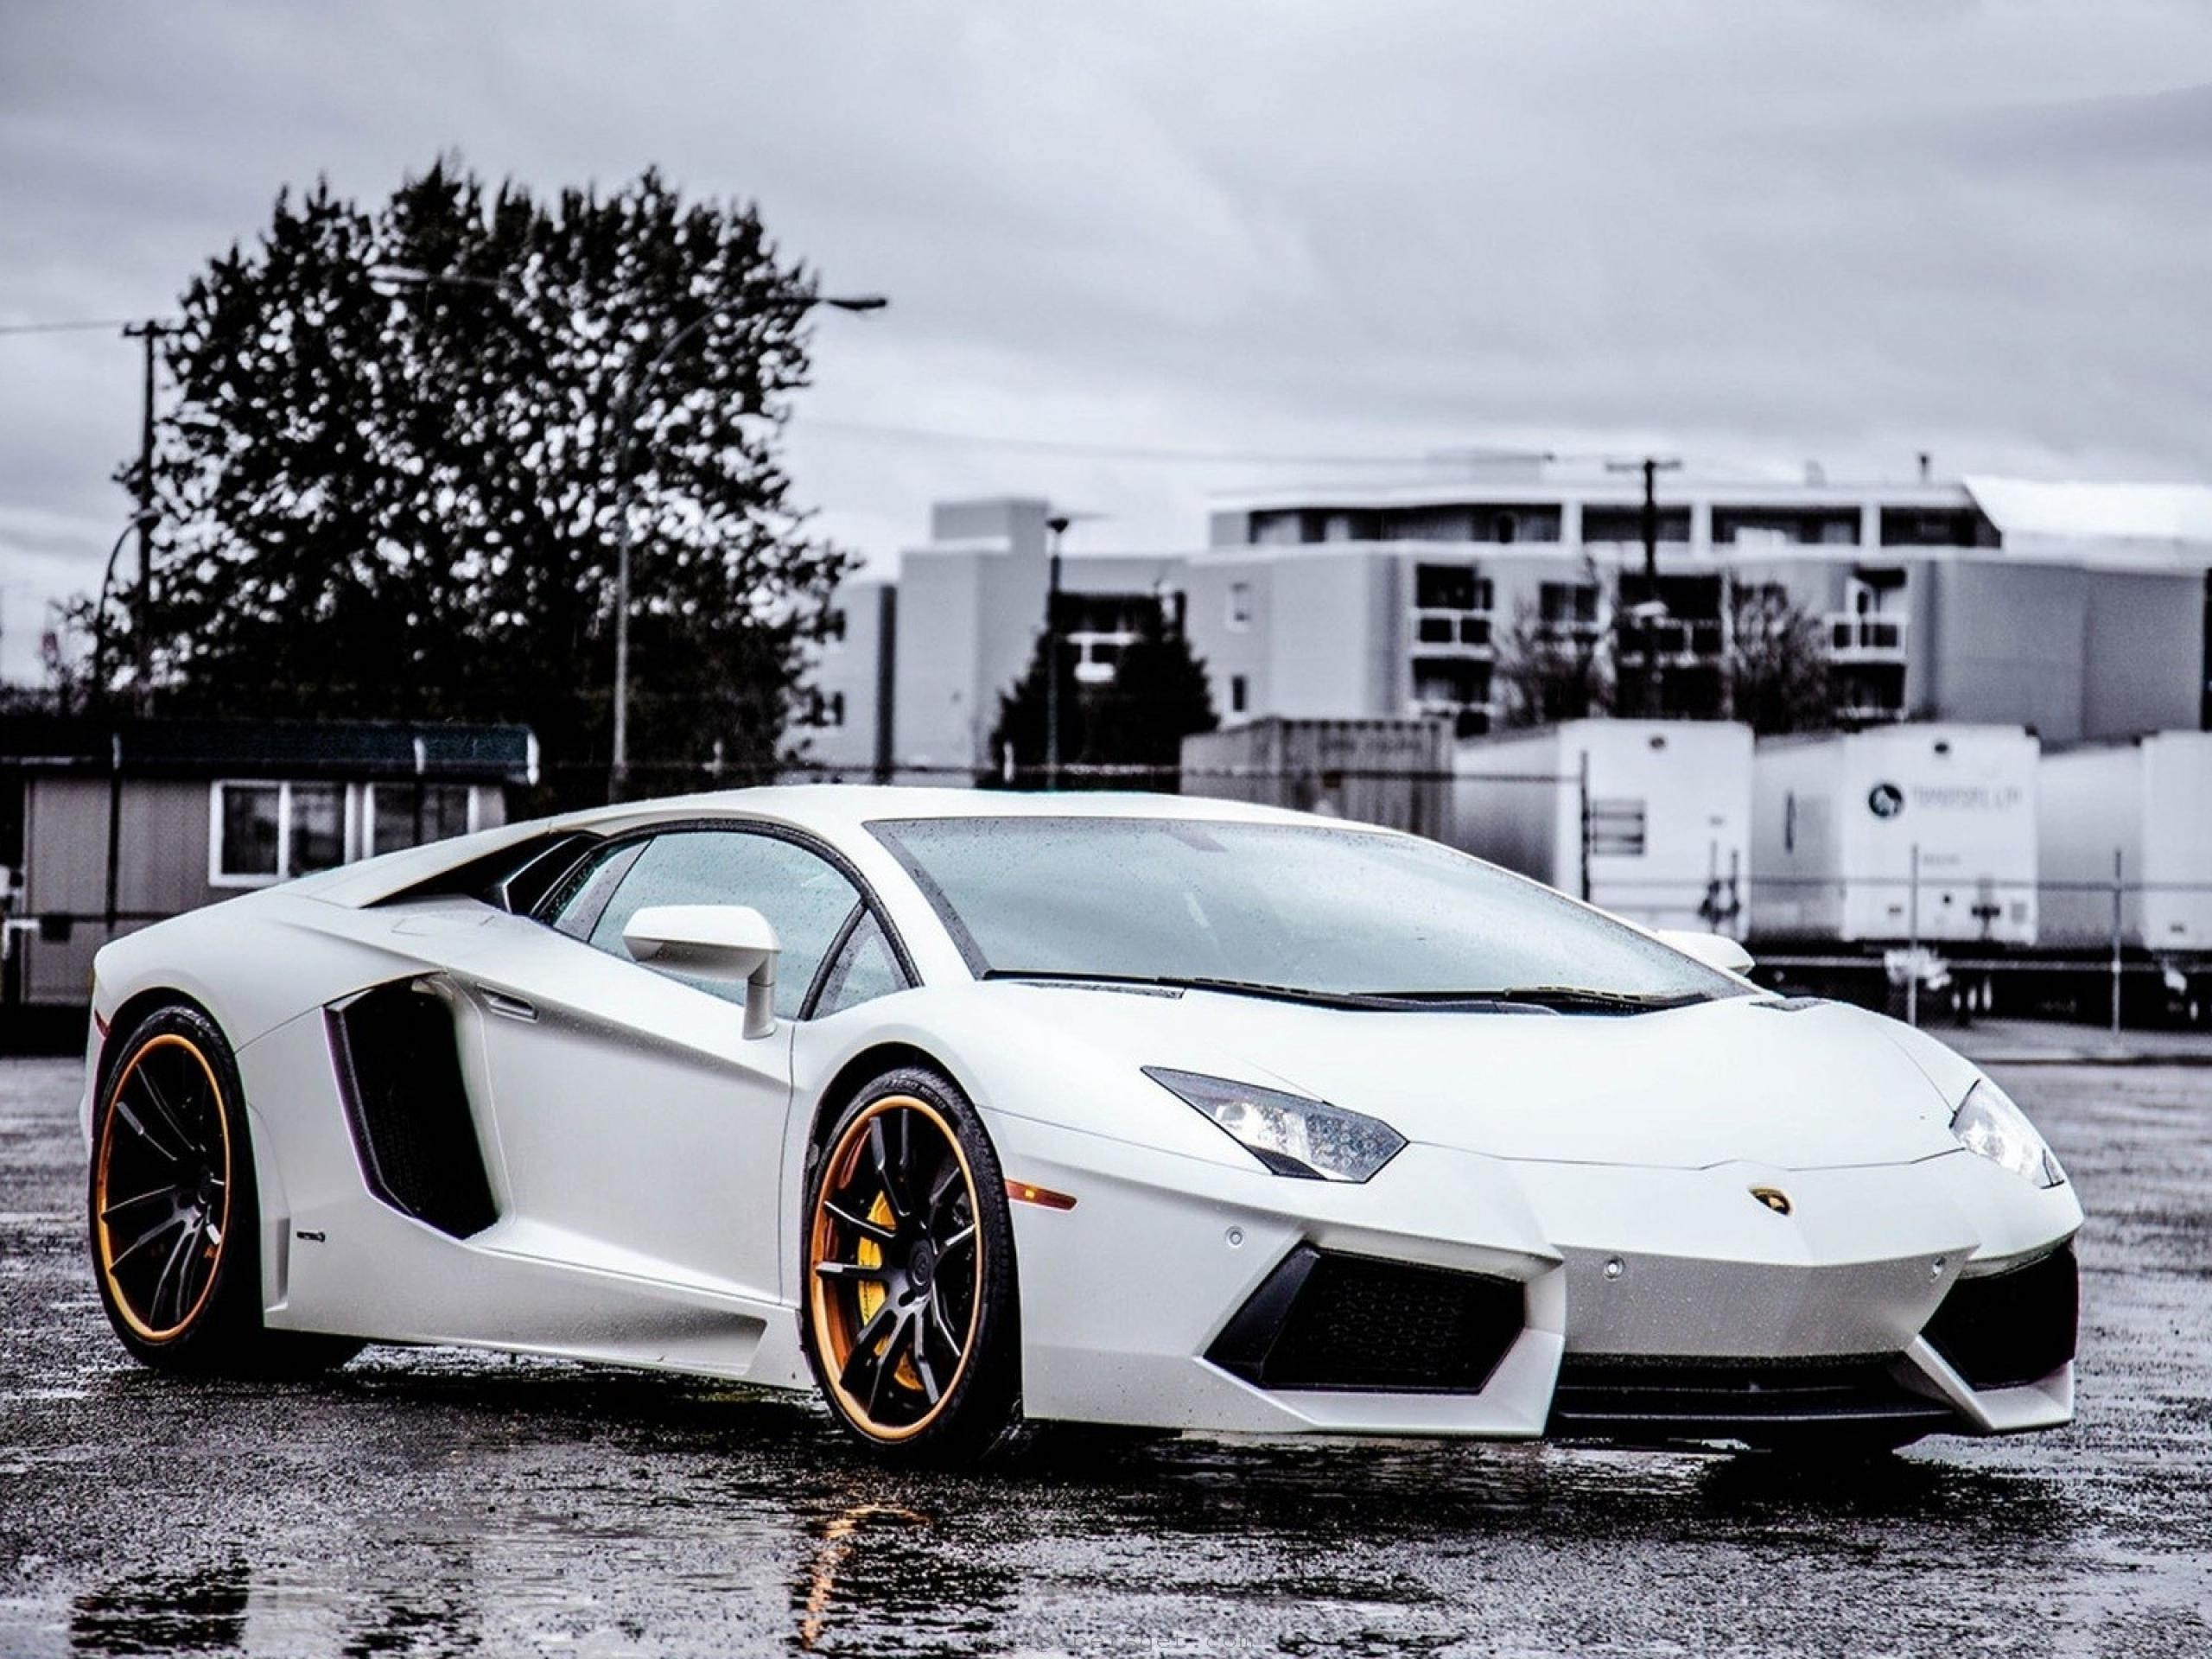 Hd wallpaper lamborghini - Download White Italy Lamborghini Aventador New Hd Wallpaper Full Size